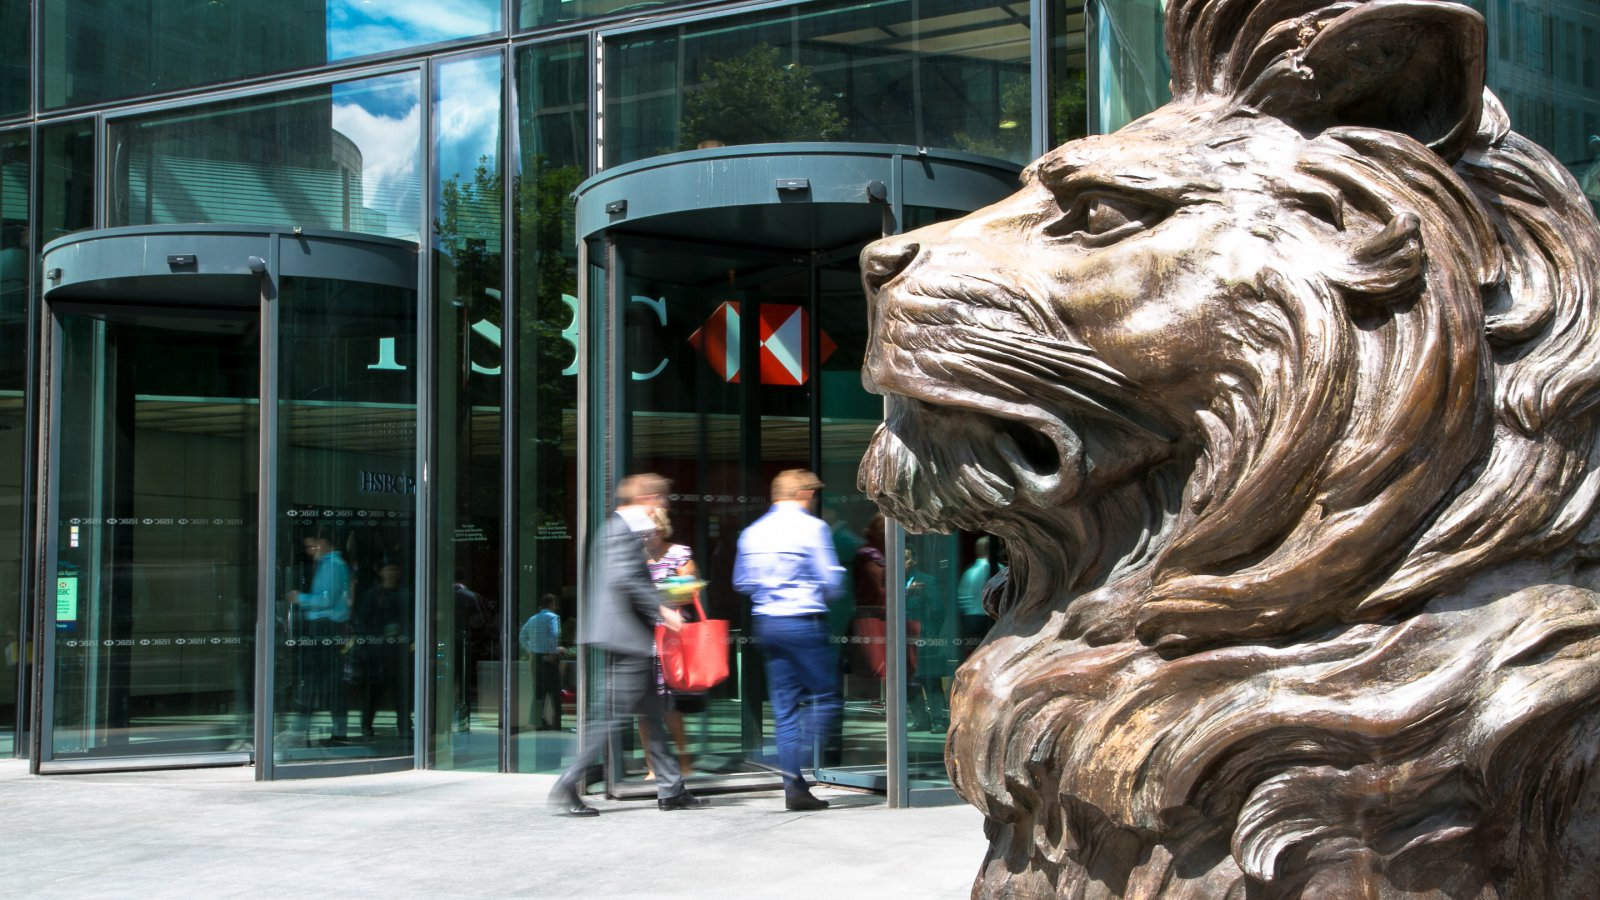 hsbc-lion-8cs.jpg